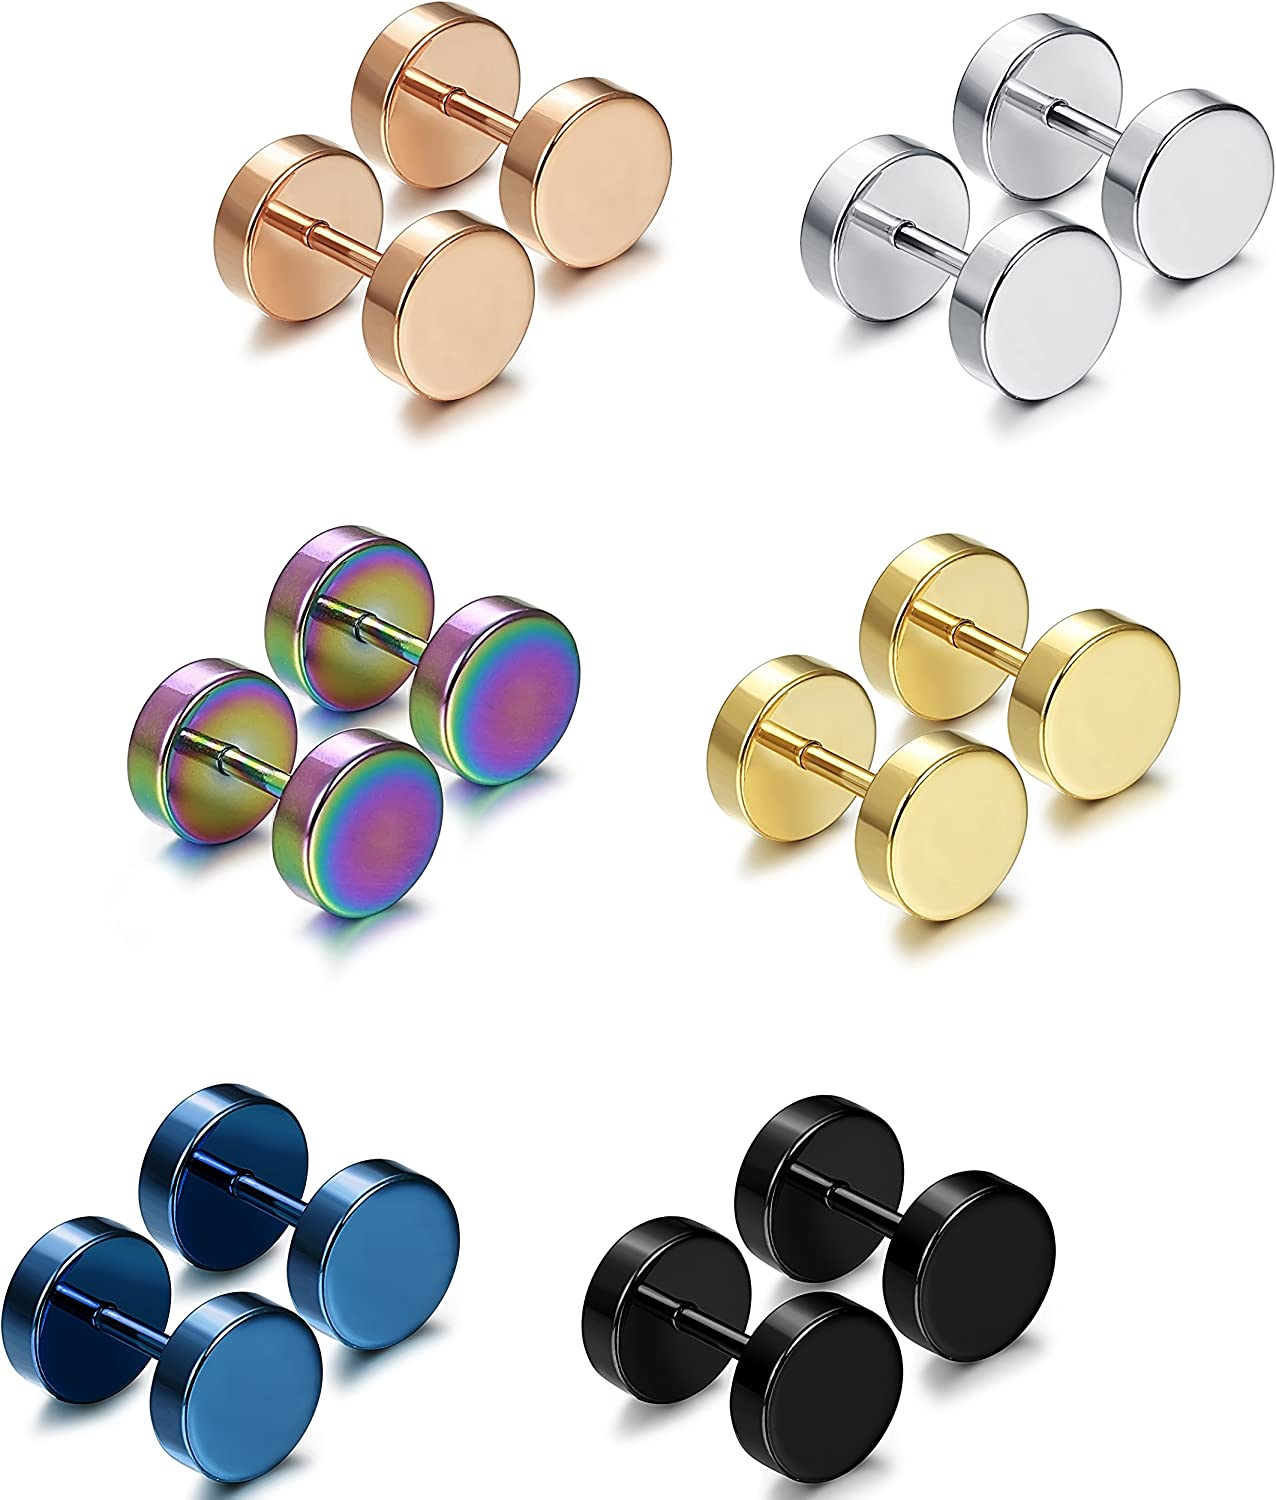 Jstyle Jewelry 6 Pairs Stainless Steel Mens Womens Stud Earrings Ear Plugs Tunnel